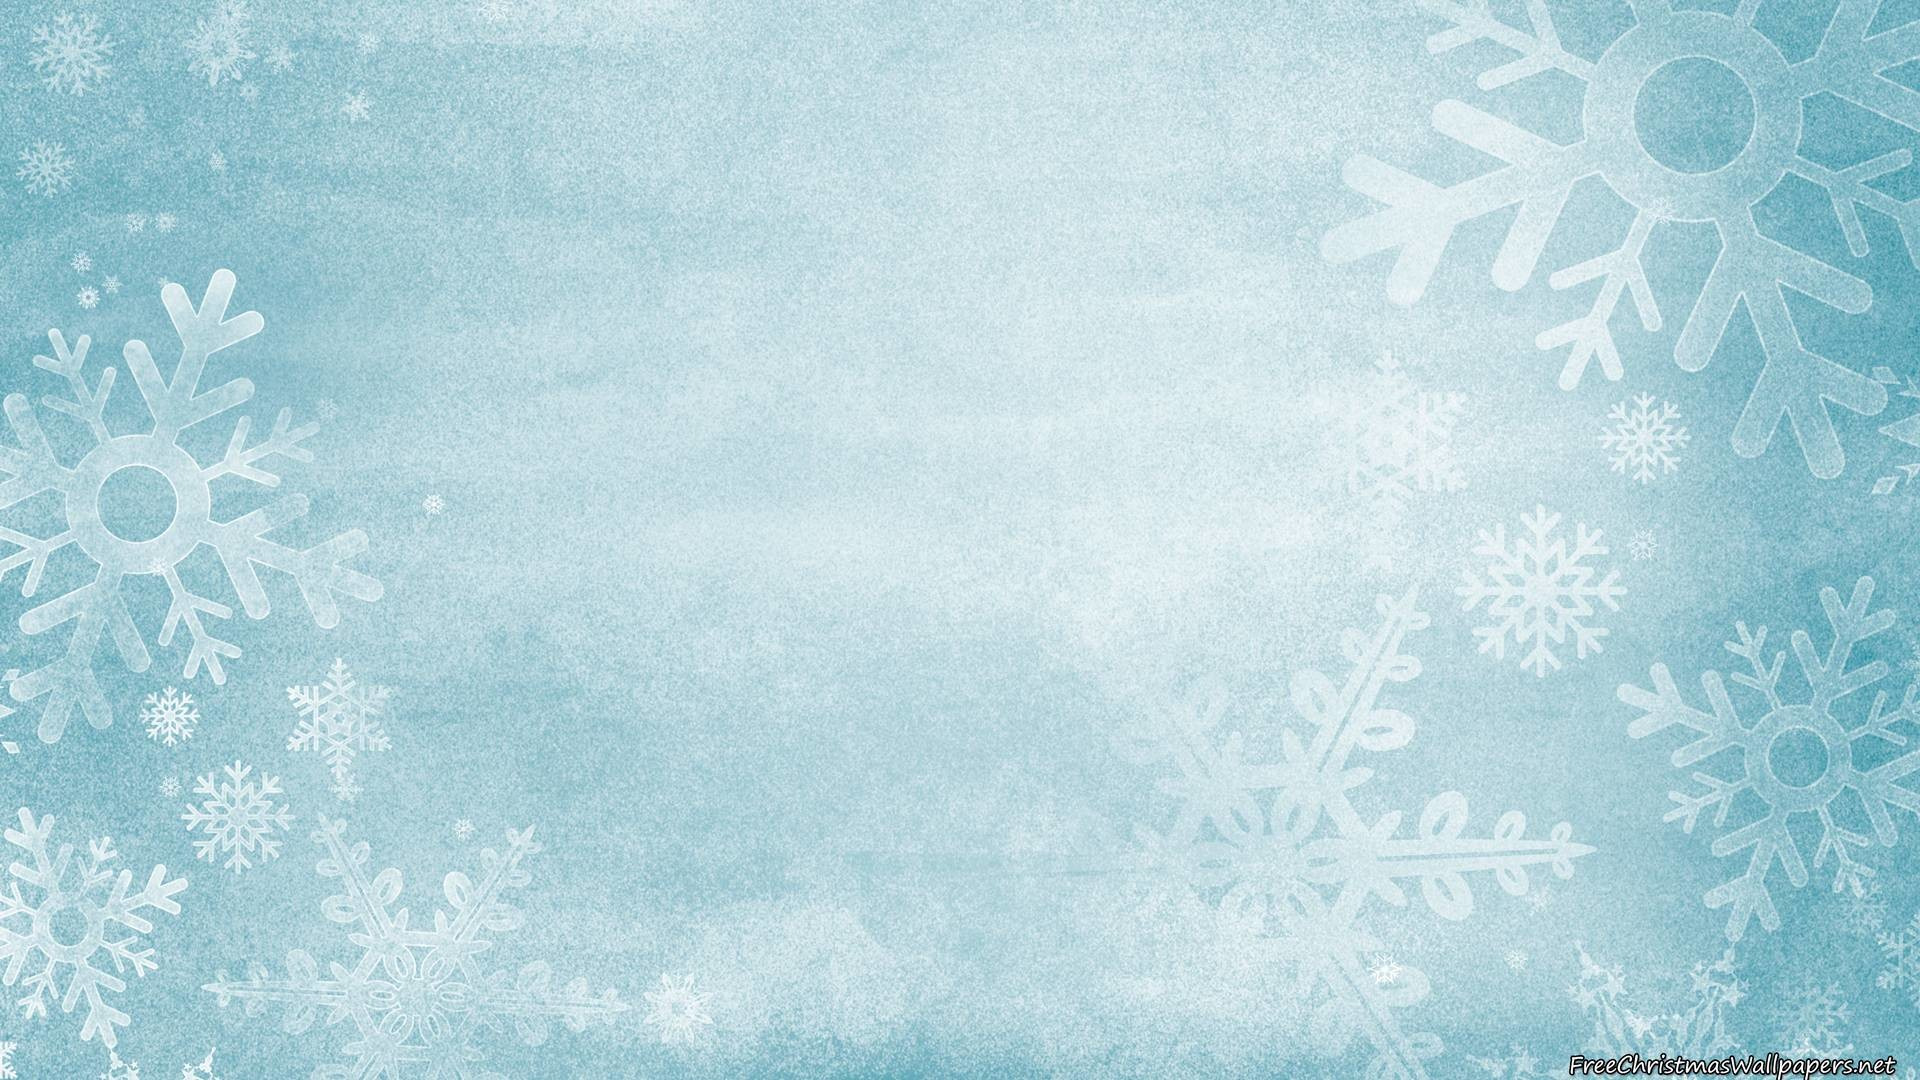 1920x1080 Christmas Backgrounds Image - Wallpaper Cave